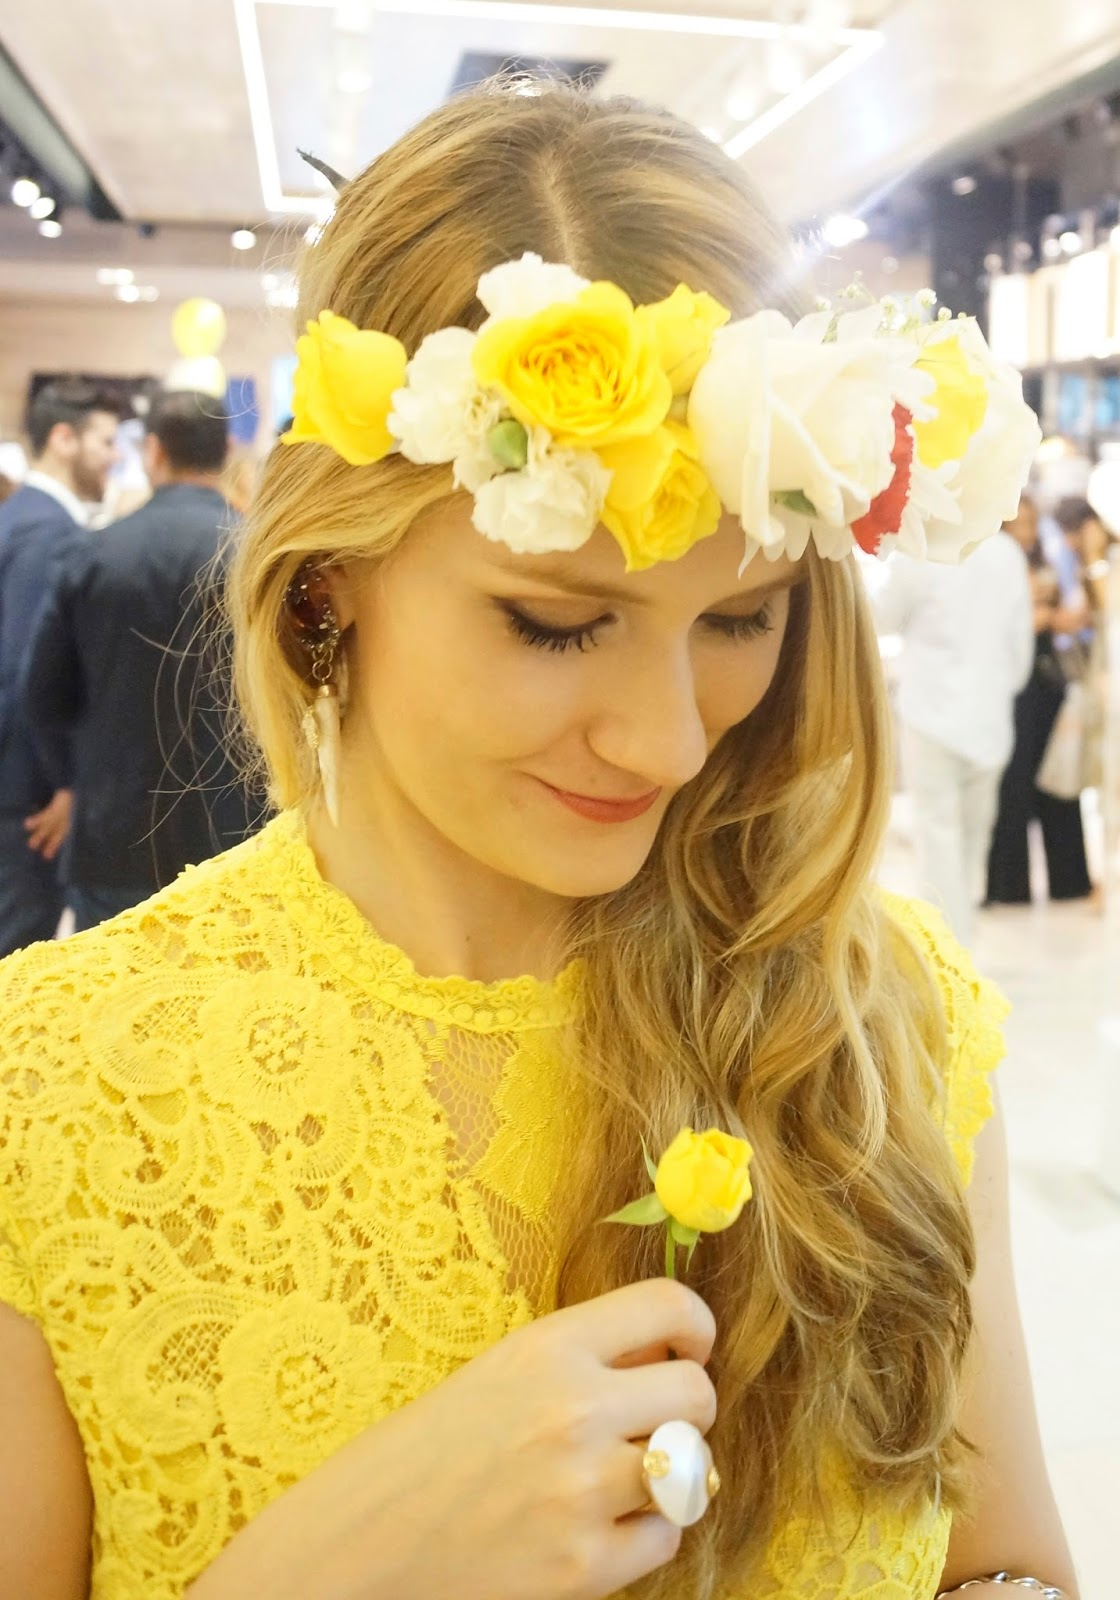 Flower crowns are perfect for Spring and Summer!